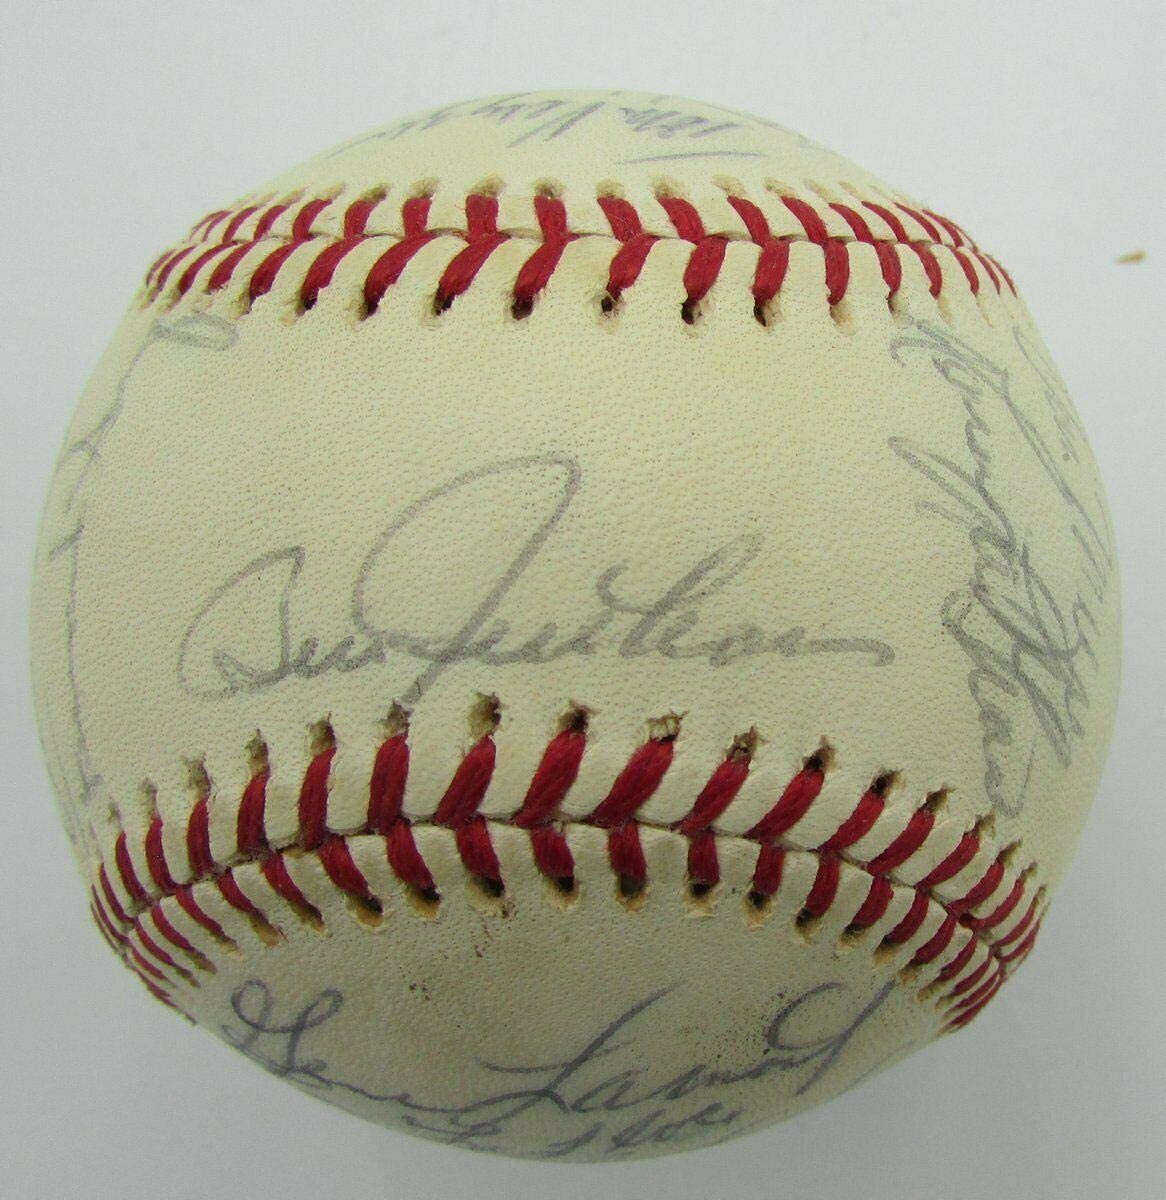 1975 Detroit Tigers Team Signed by 26 OAL Baseball Lolich Brown 149802 - Autographed Baseballs